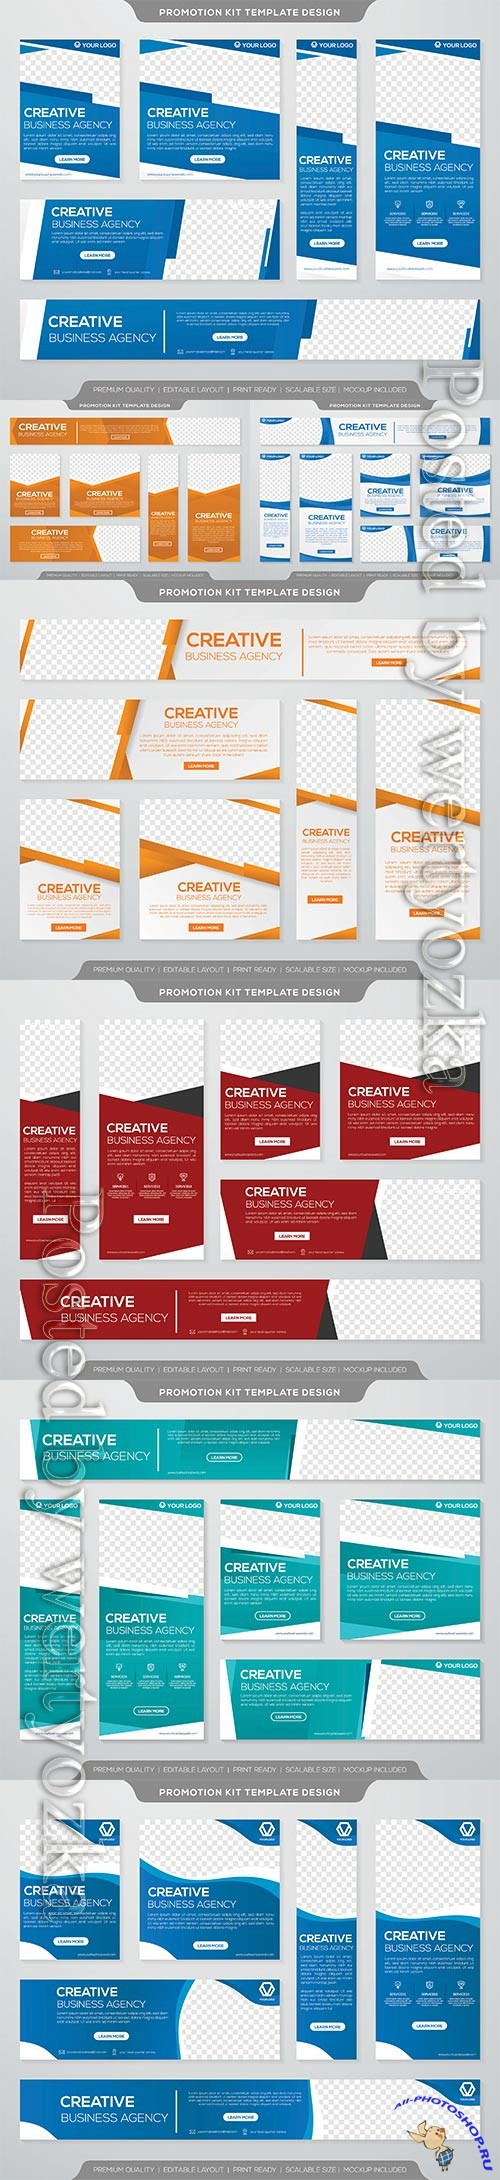 Set of vector business banner template with minimalist layout and modern style